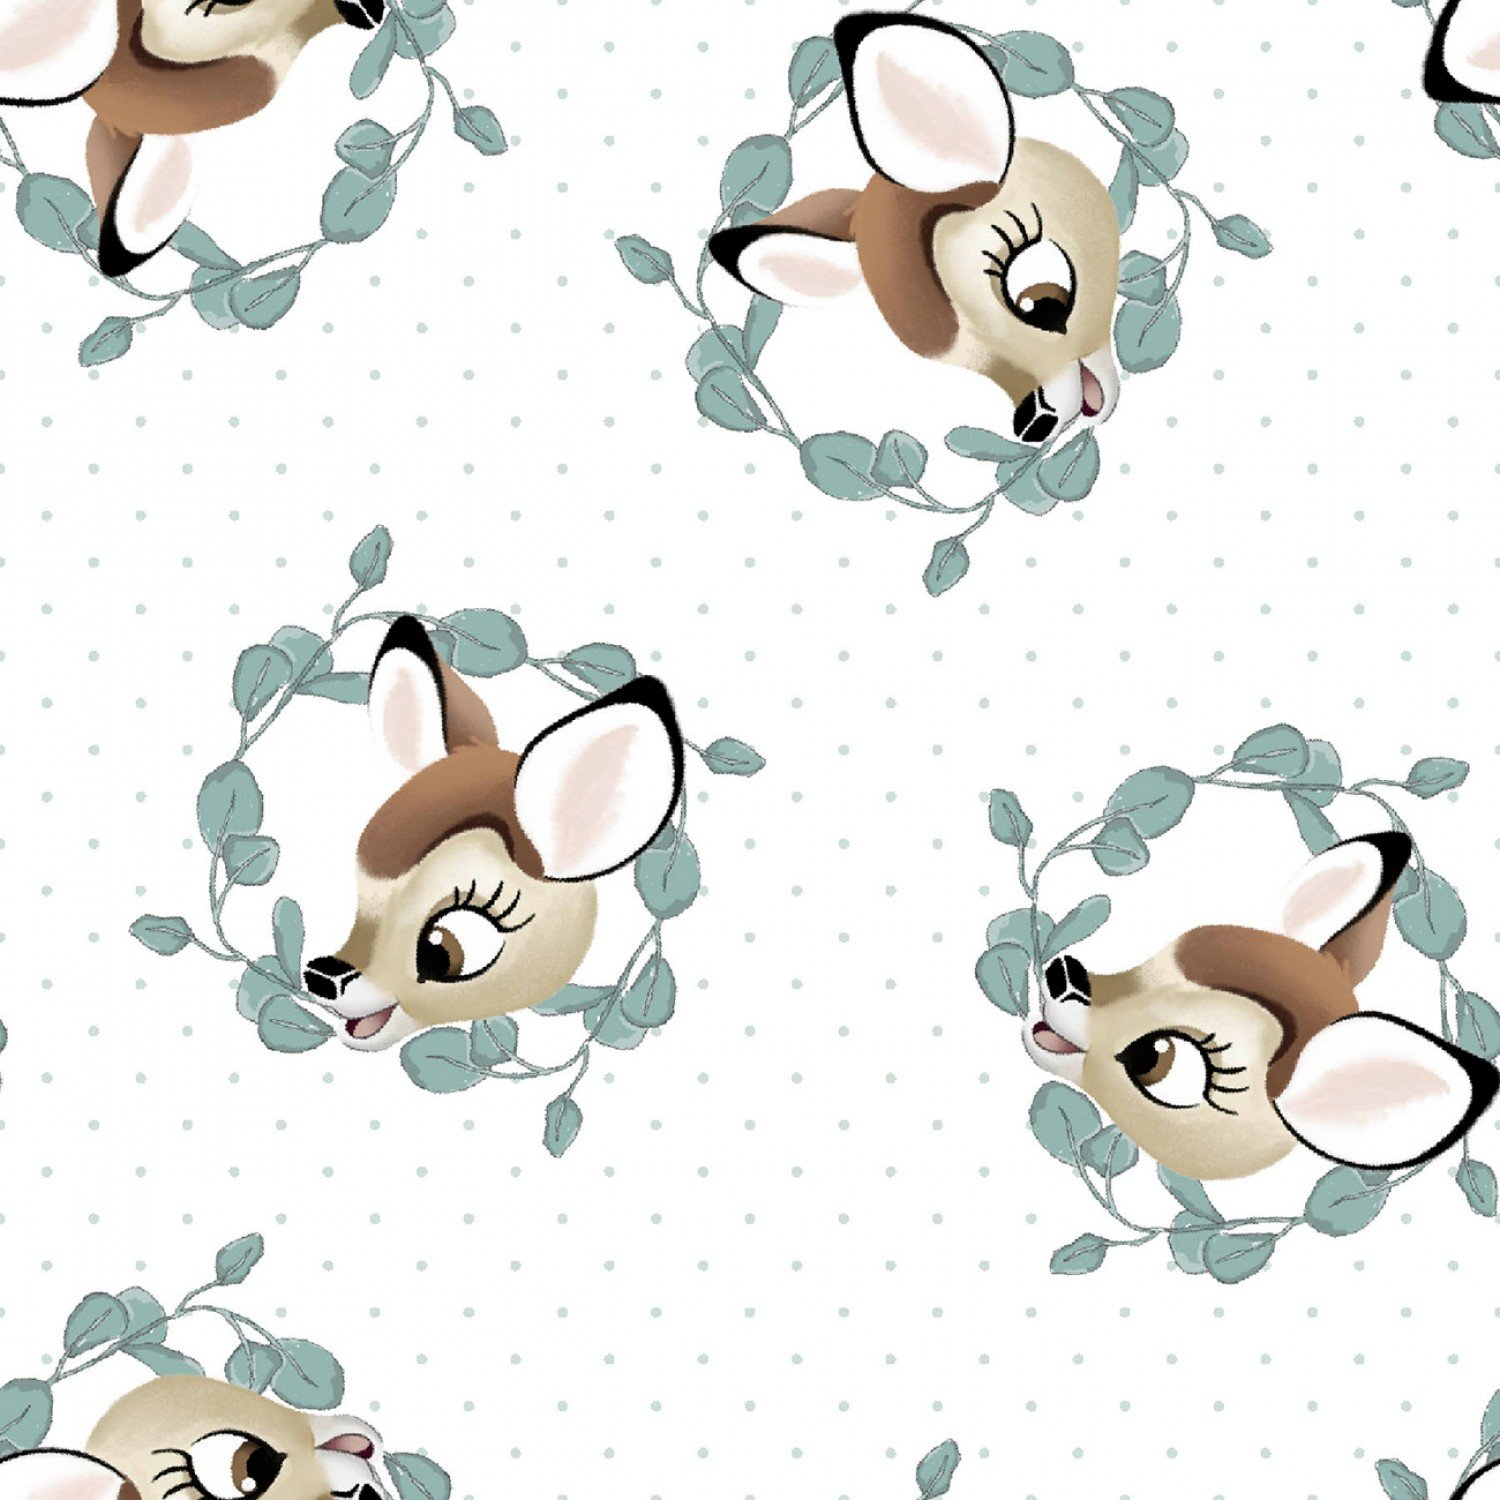 Bambi and Friends Children's Cotton Fabric 43 Inches Wide